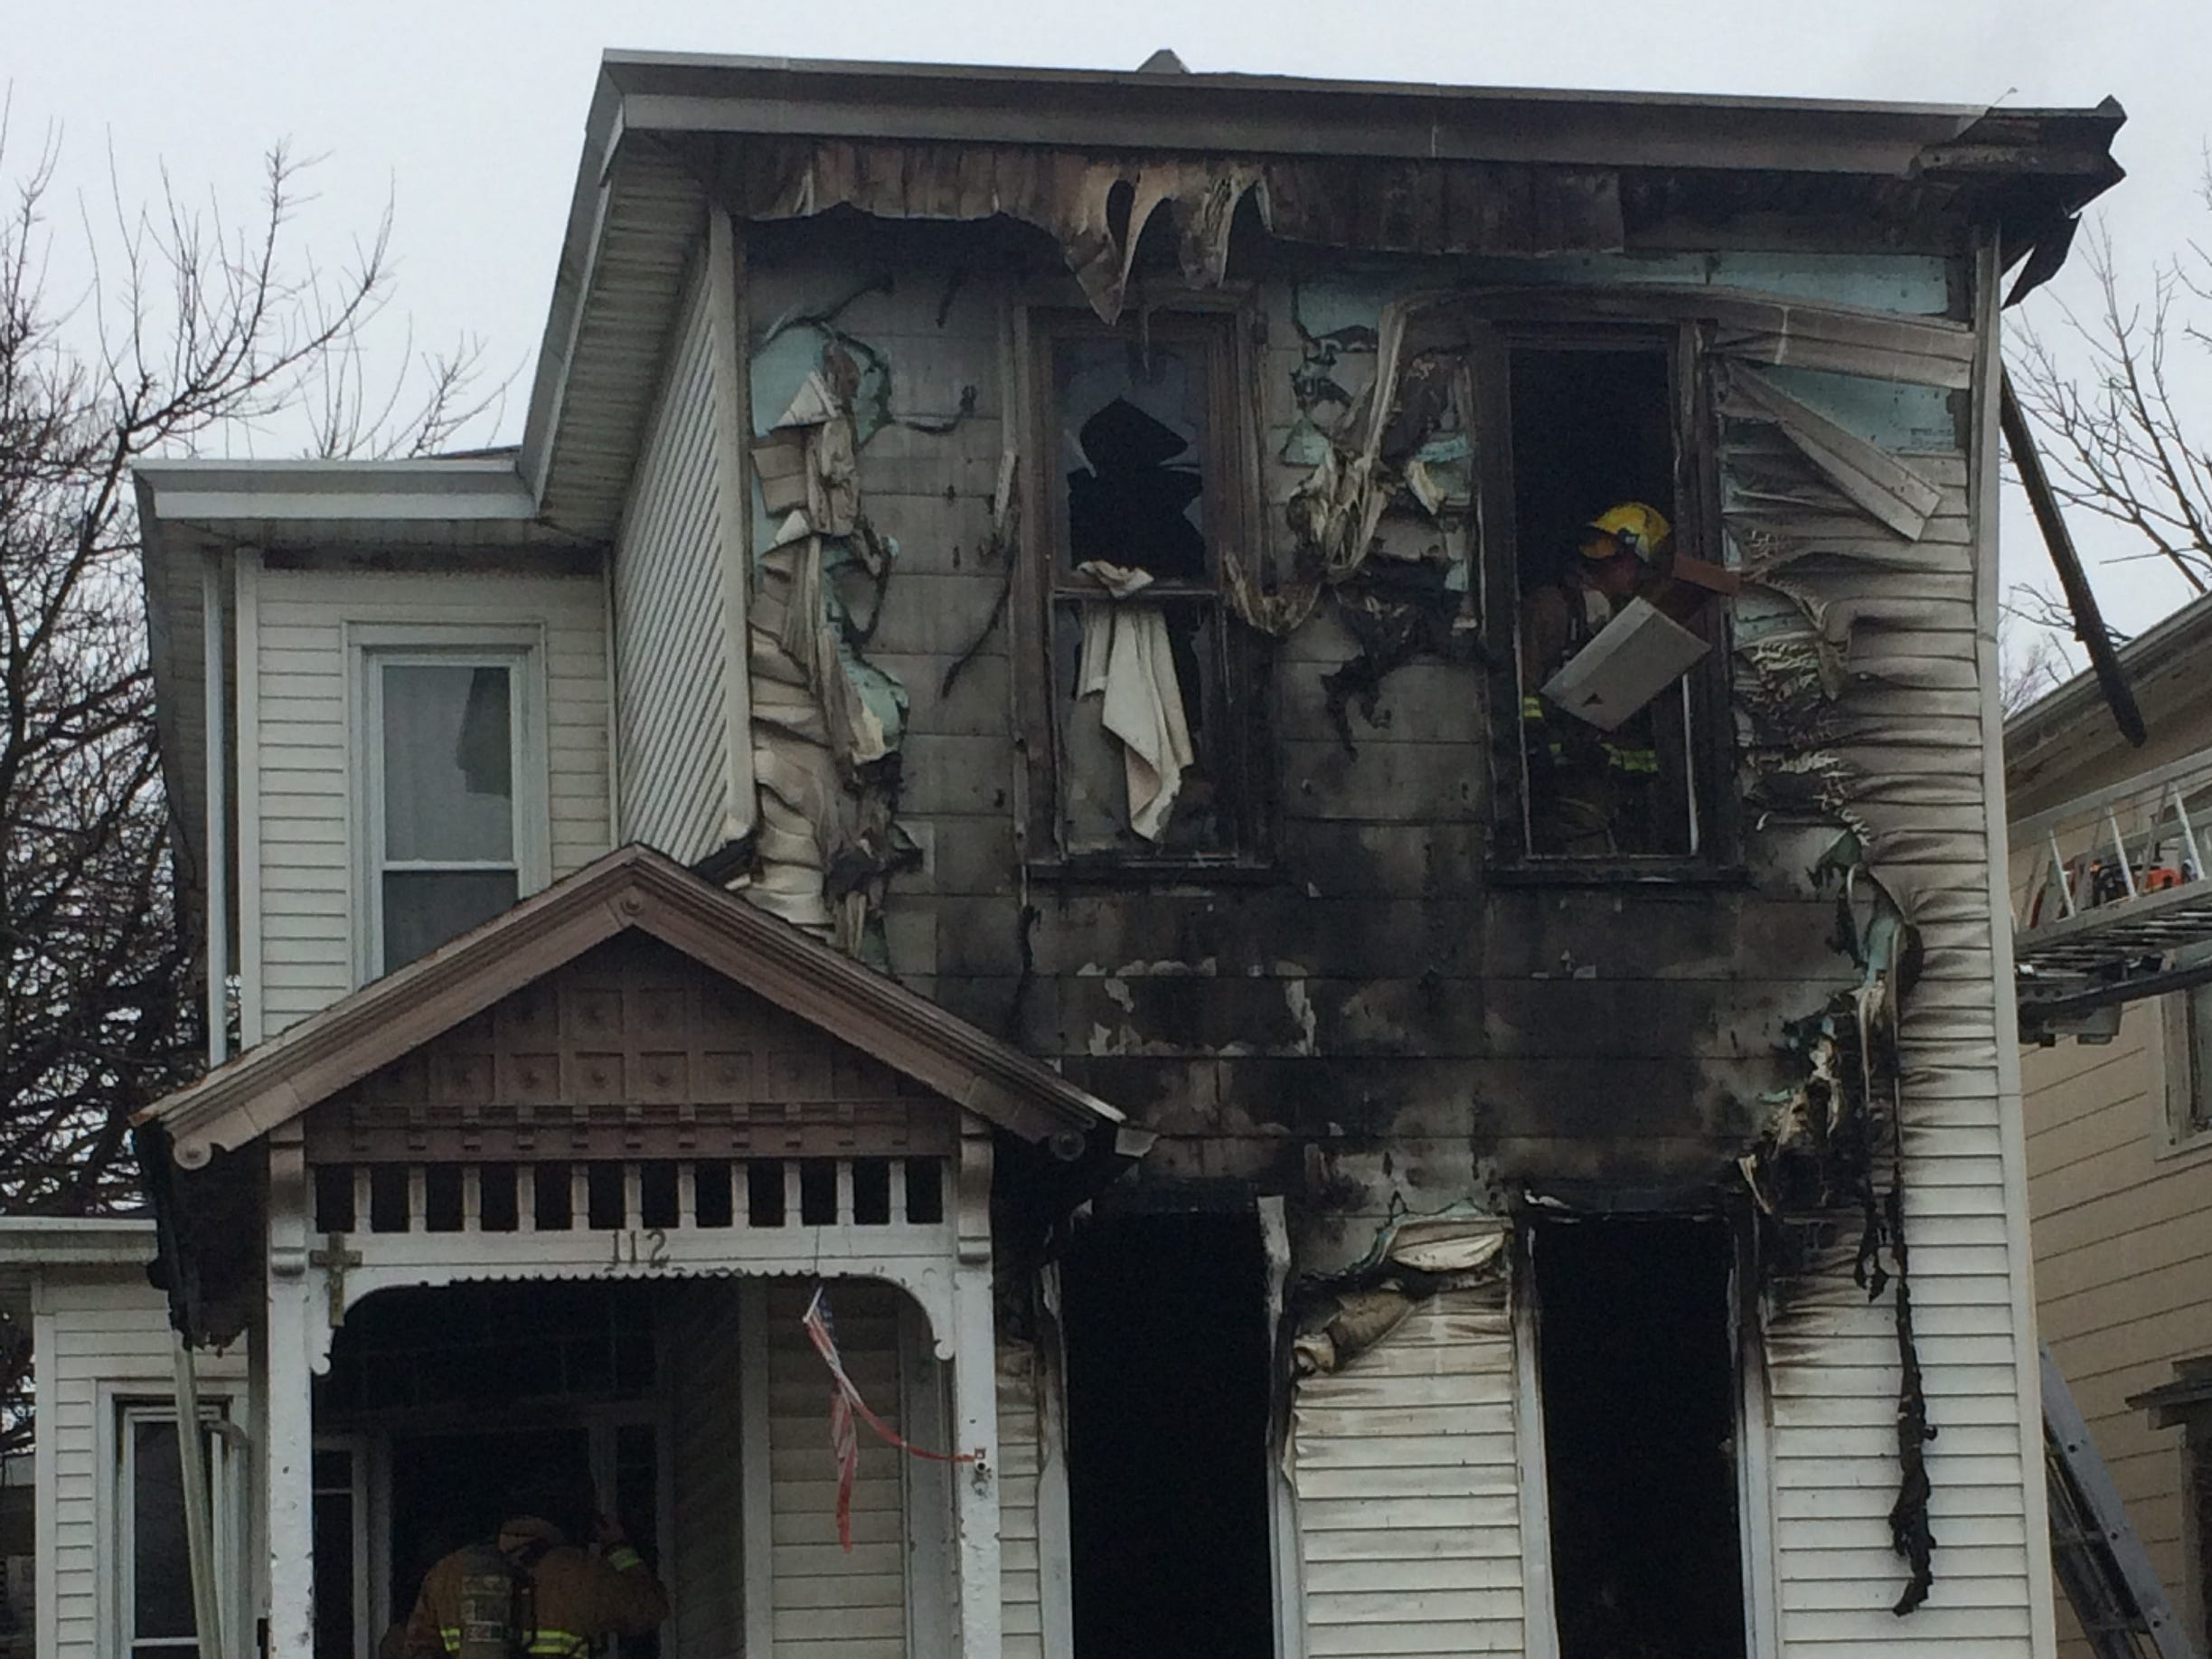 Richmond Fire Department was dispatched at 11:09 a.m. Wednesday to a house fire at 112 N. 18th St.